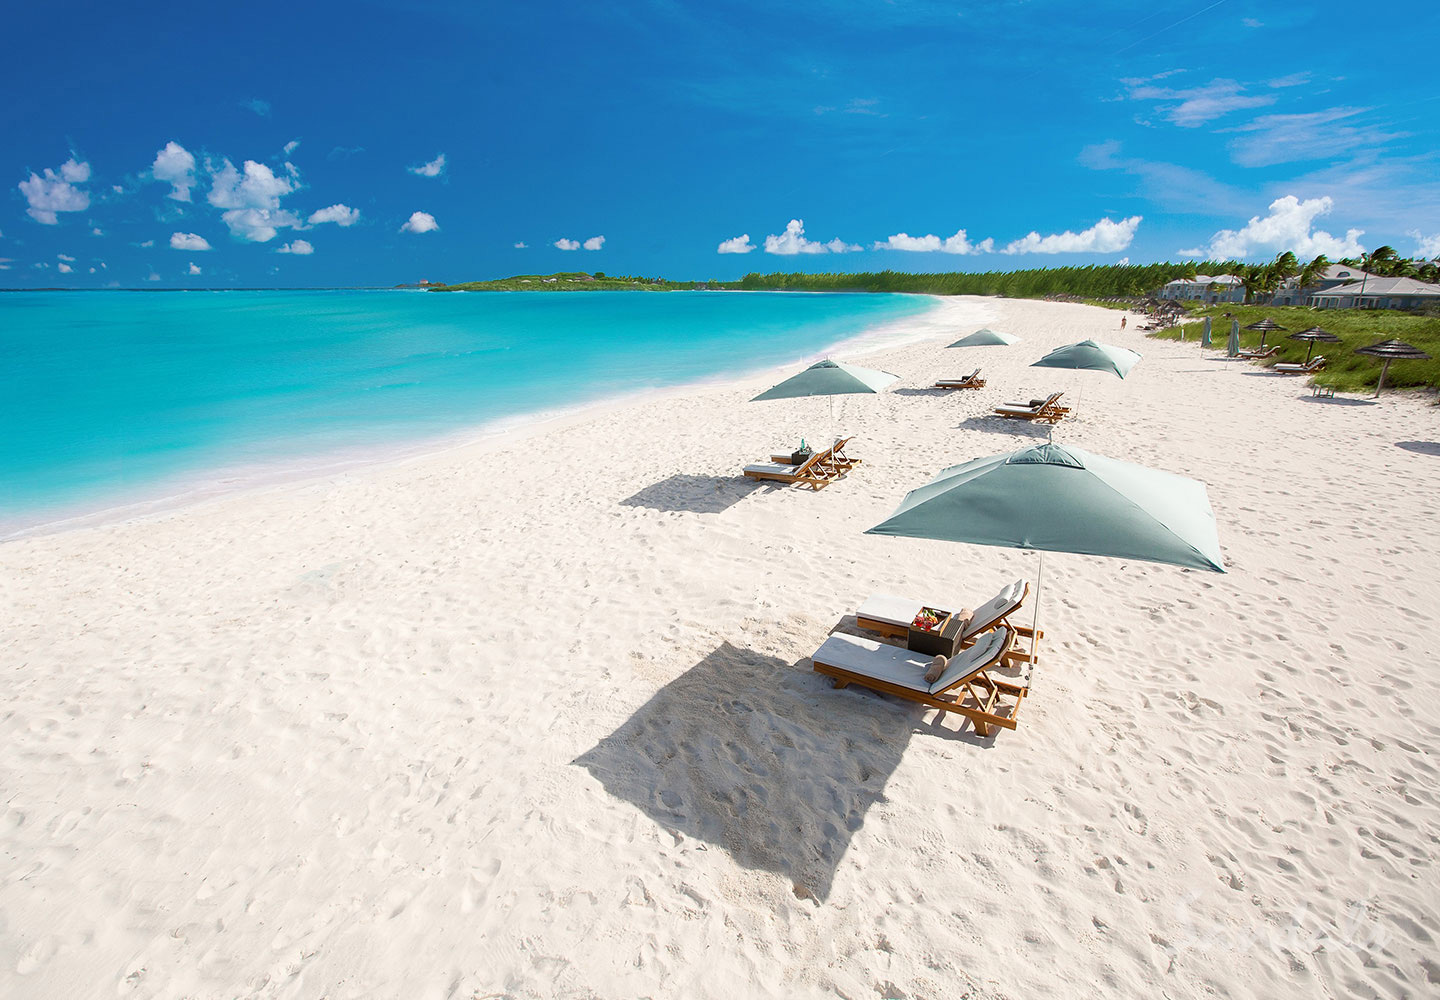 Travel Agency All-Inclusive Resort Sandals Emerald Bay 114